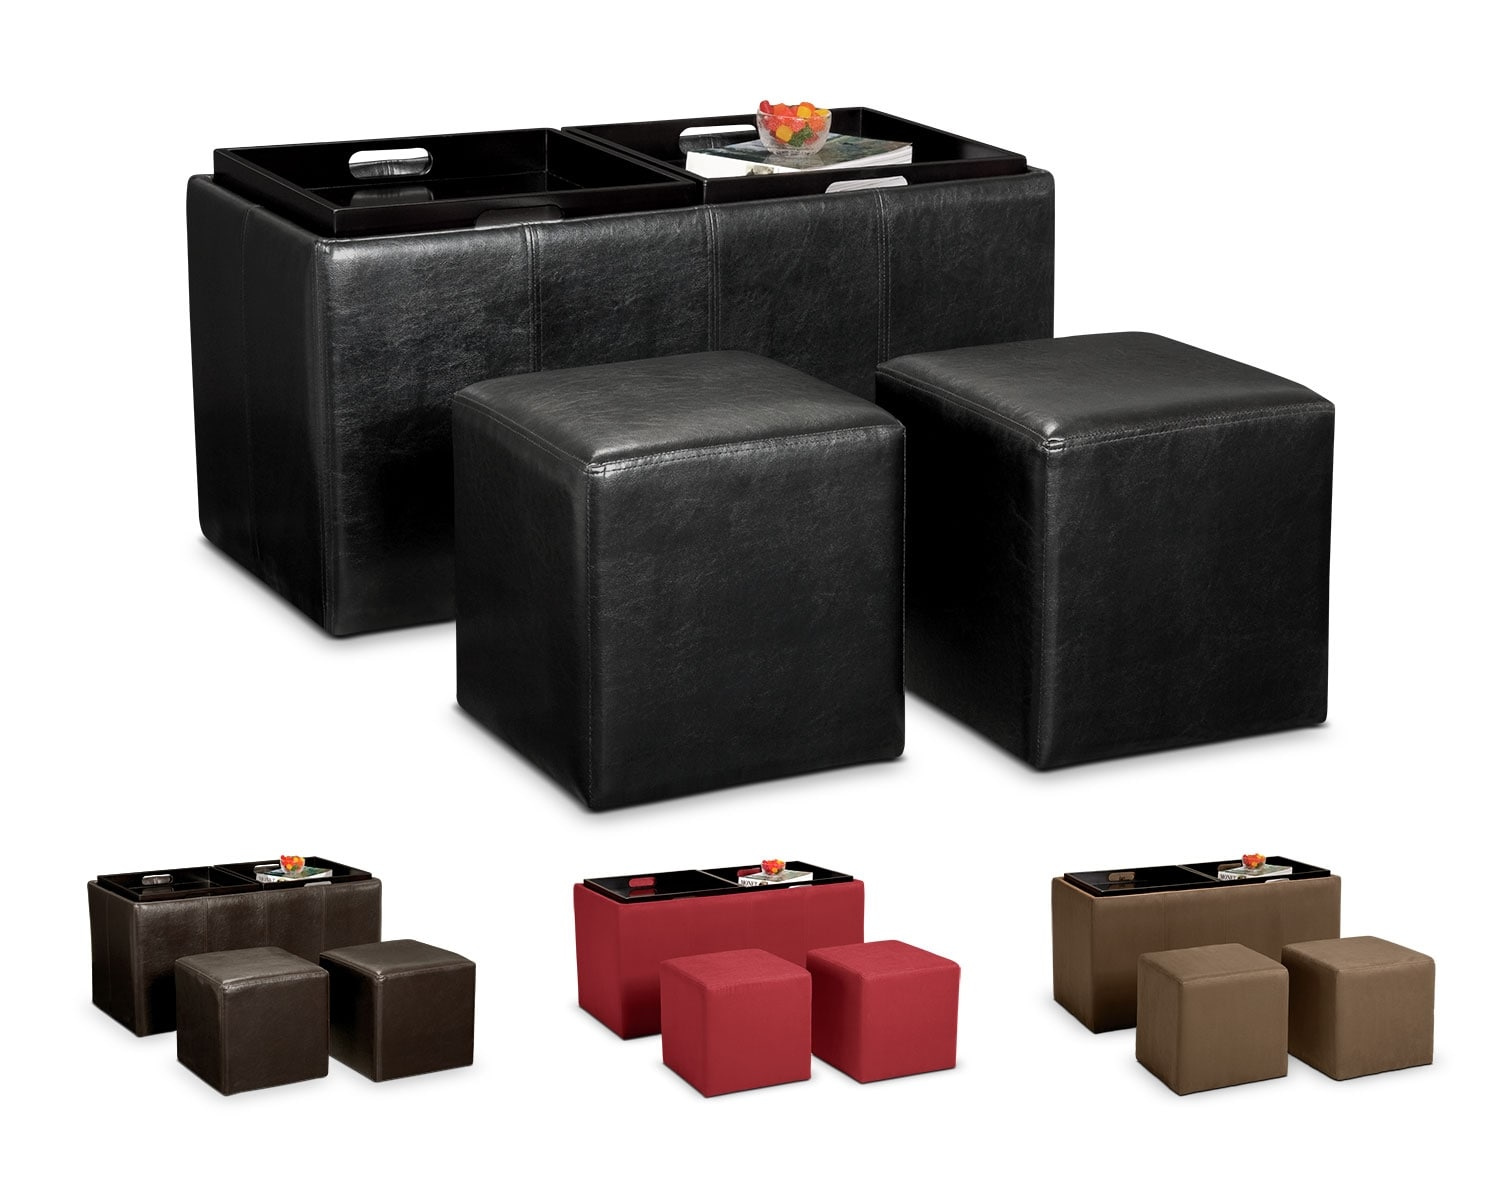 storage ottoman game day essentials